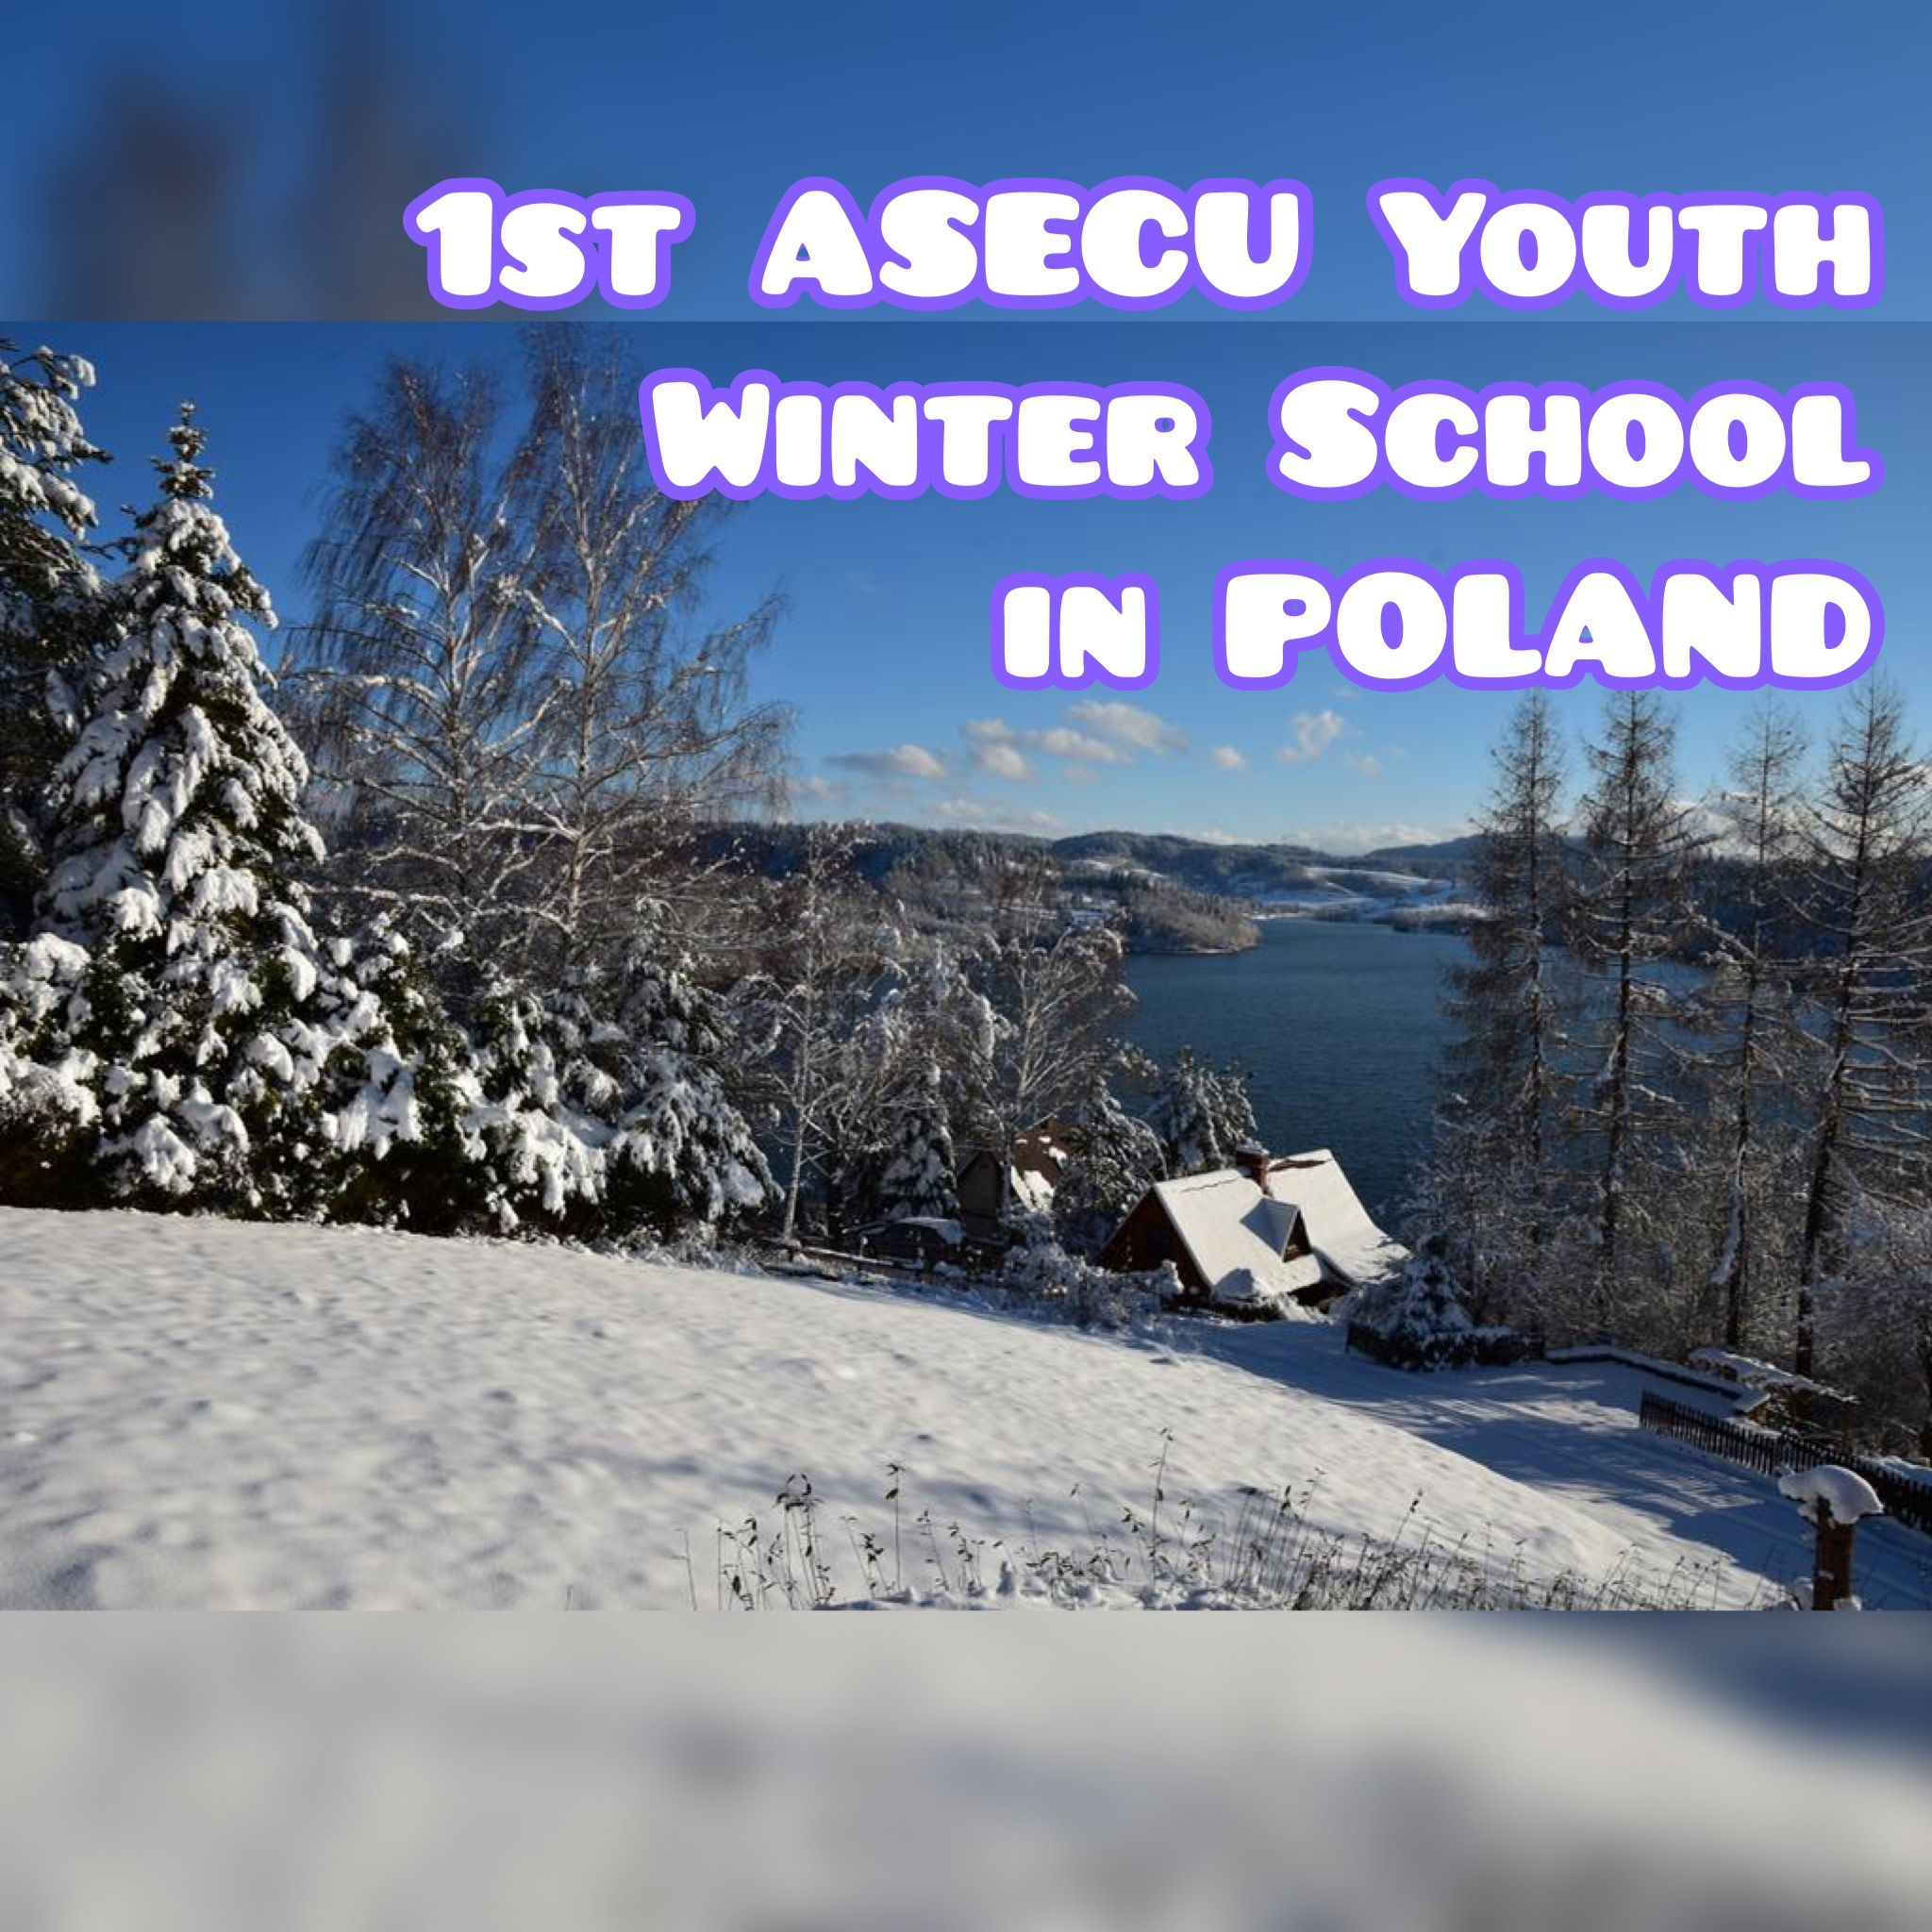 Application submission for the 1st ASECU Youth Winter School is open!